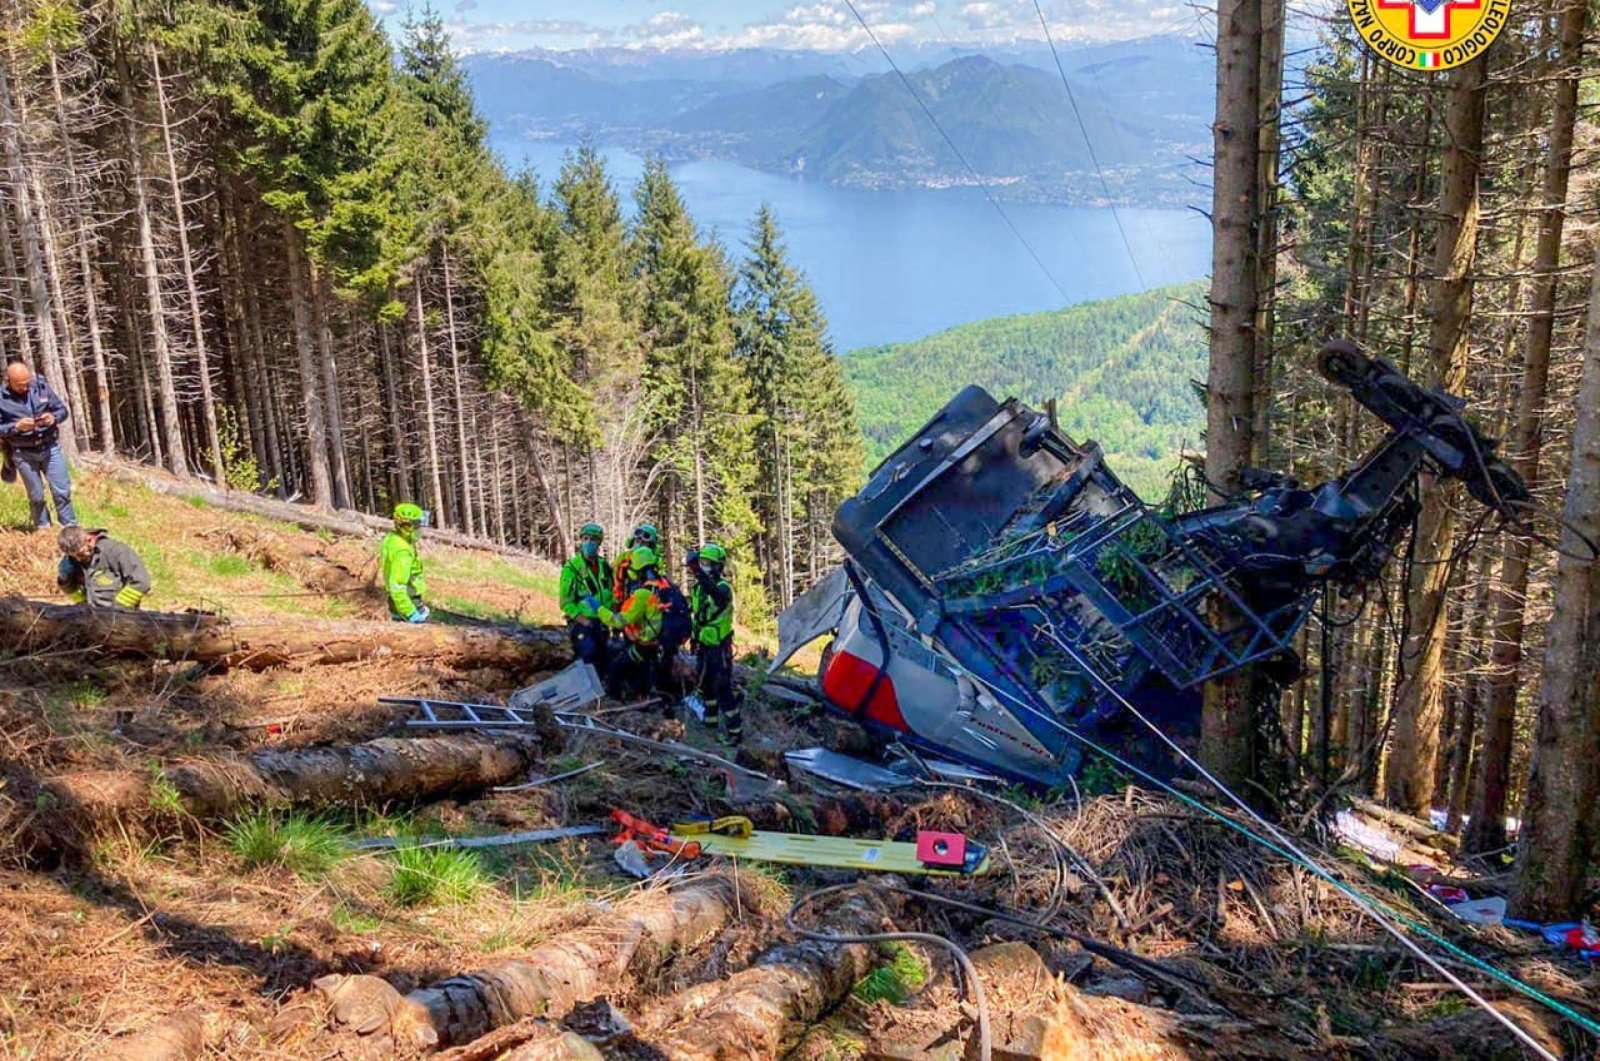 A handout photo made available by the press office of the Corpo Nazionale Soccorso Alpino Speleologico (CNSAS), Italy's national mountain rescue service, shows the scene of a cable car accident near Lake Maggiore, in Verbania, northern Italy, May 23, 2021. (EPA Photo)